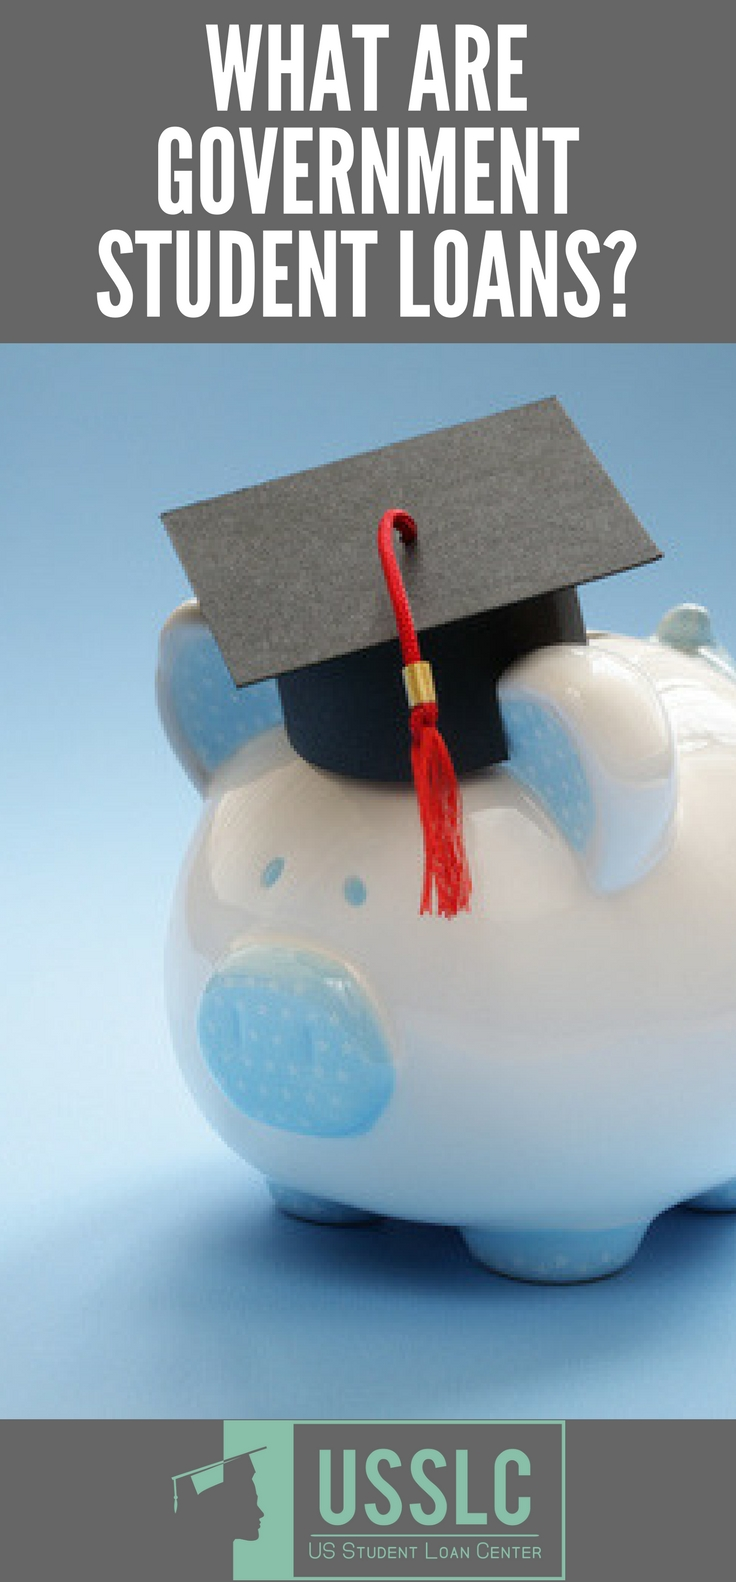 What Are Government Student Loans?